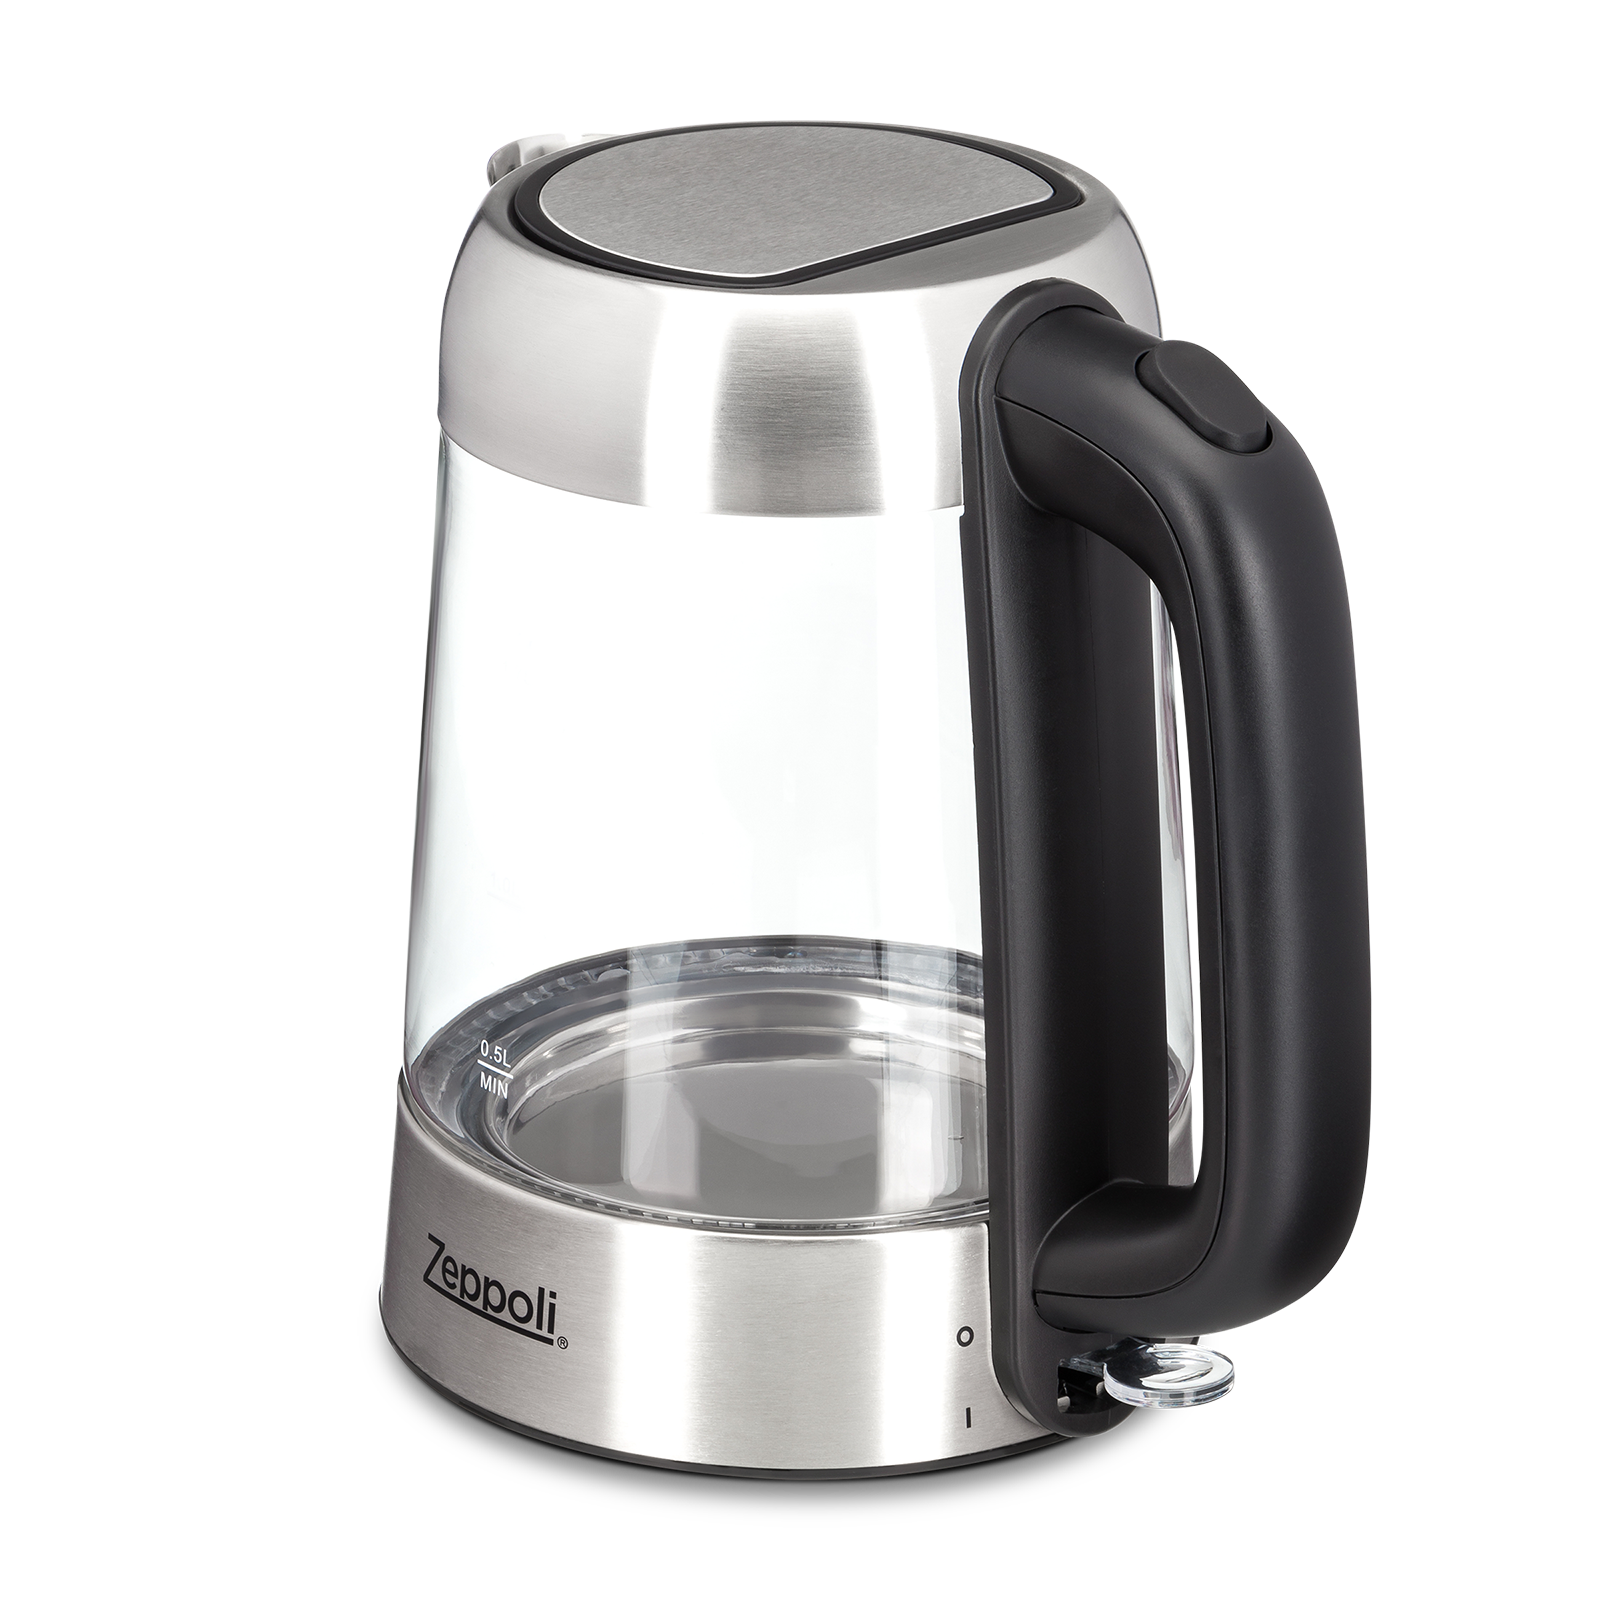 Electric kettle product image